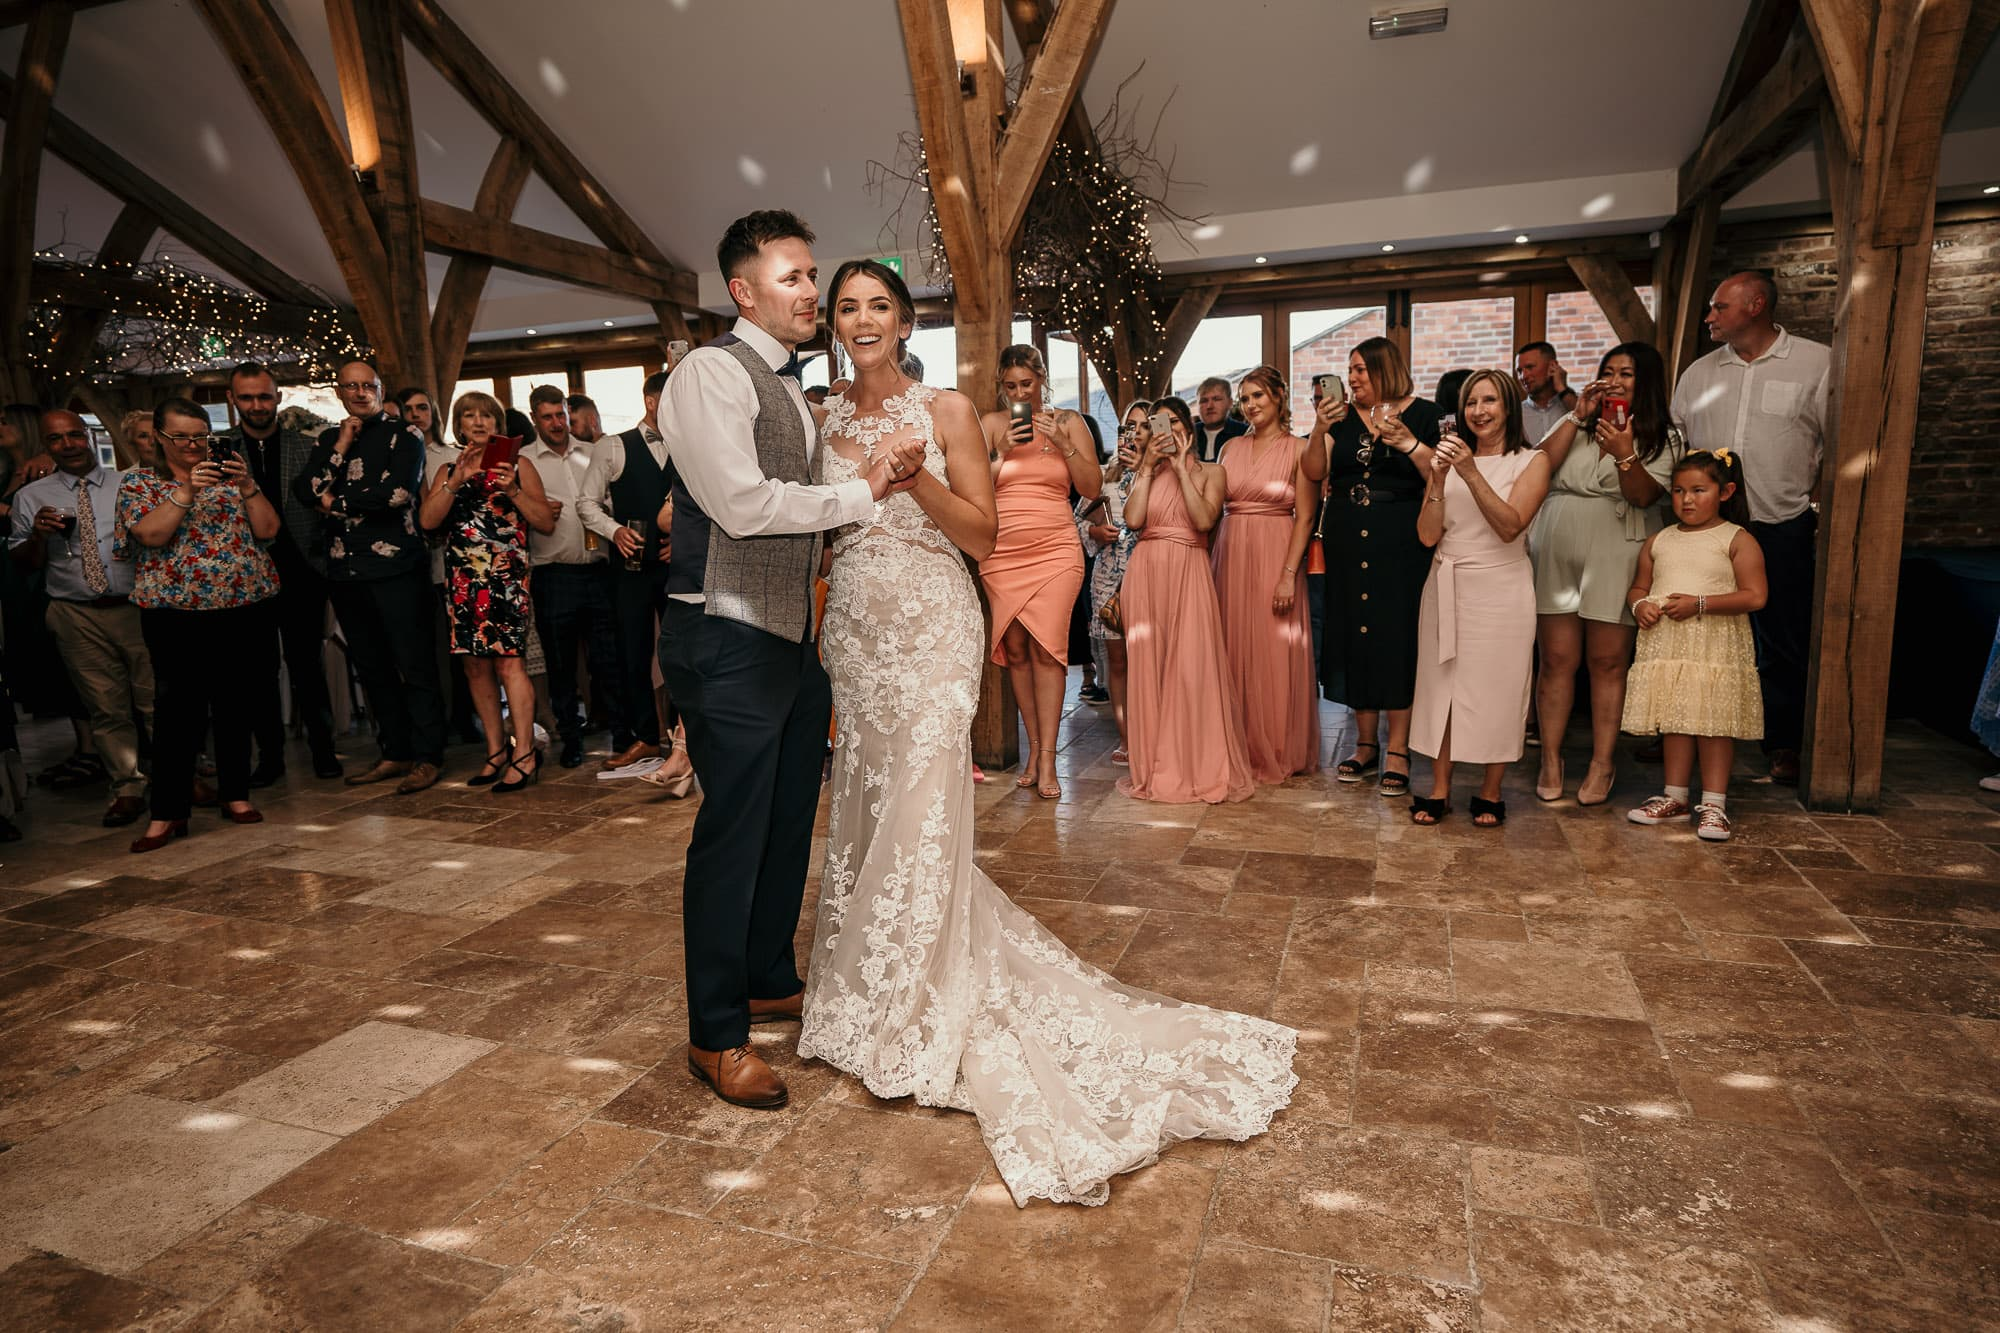 First dance at Swancar Wedding Day